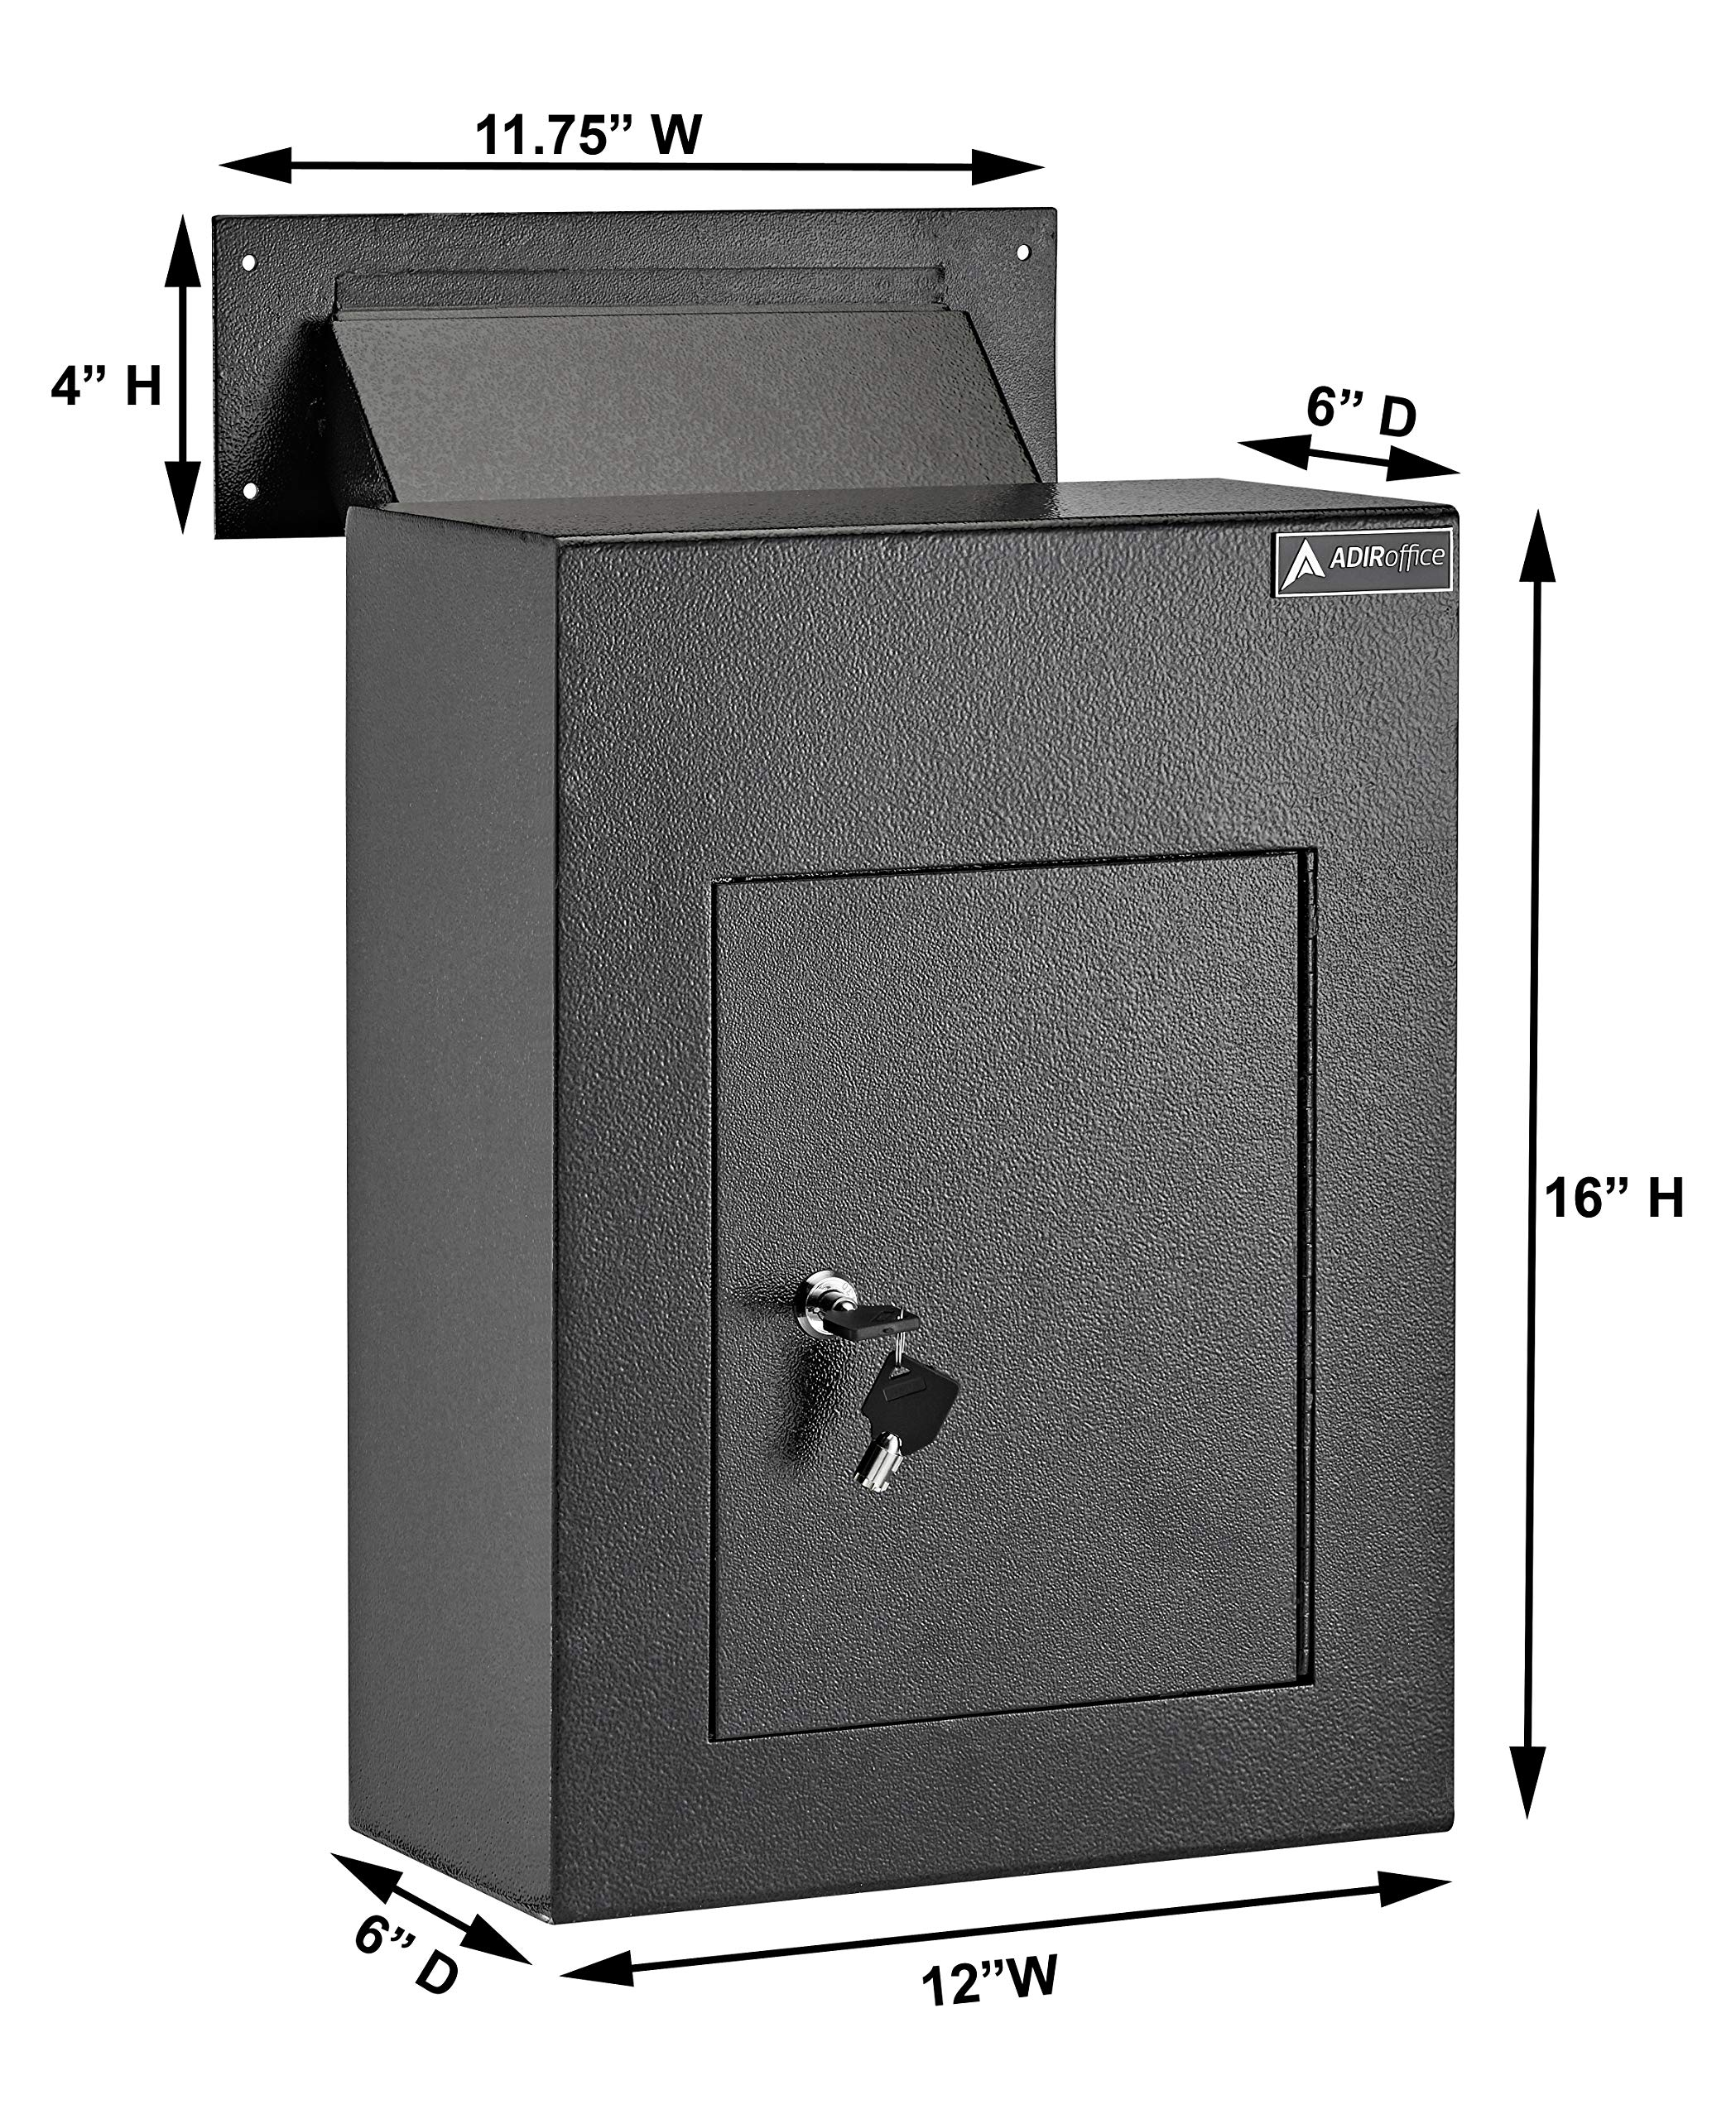 AdirOffice Through The Wall Drop Box Safe (Black/Grey/White) - Durable Thick Steel w/Adjustable Chute - Mail Vault for Home Office Hotel Apartment (Grey) by AdirOffice (Image #5)